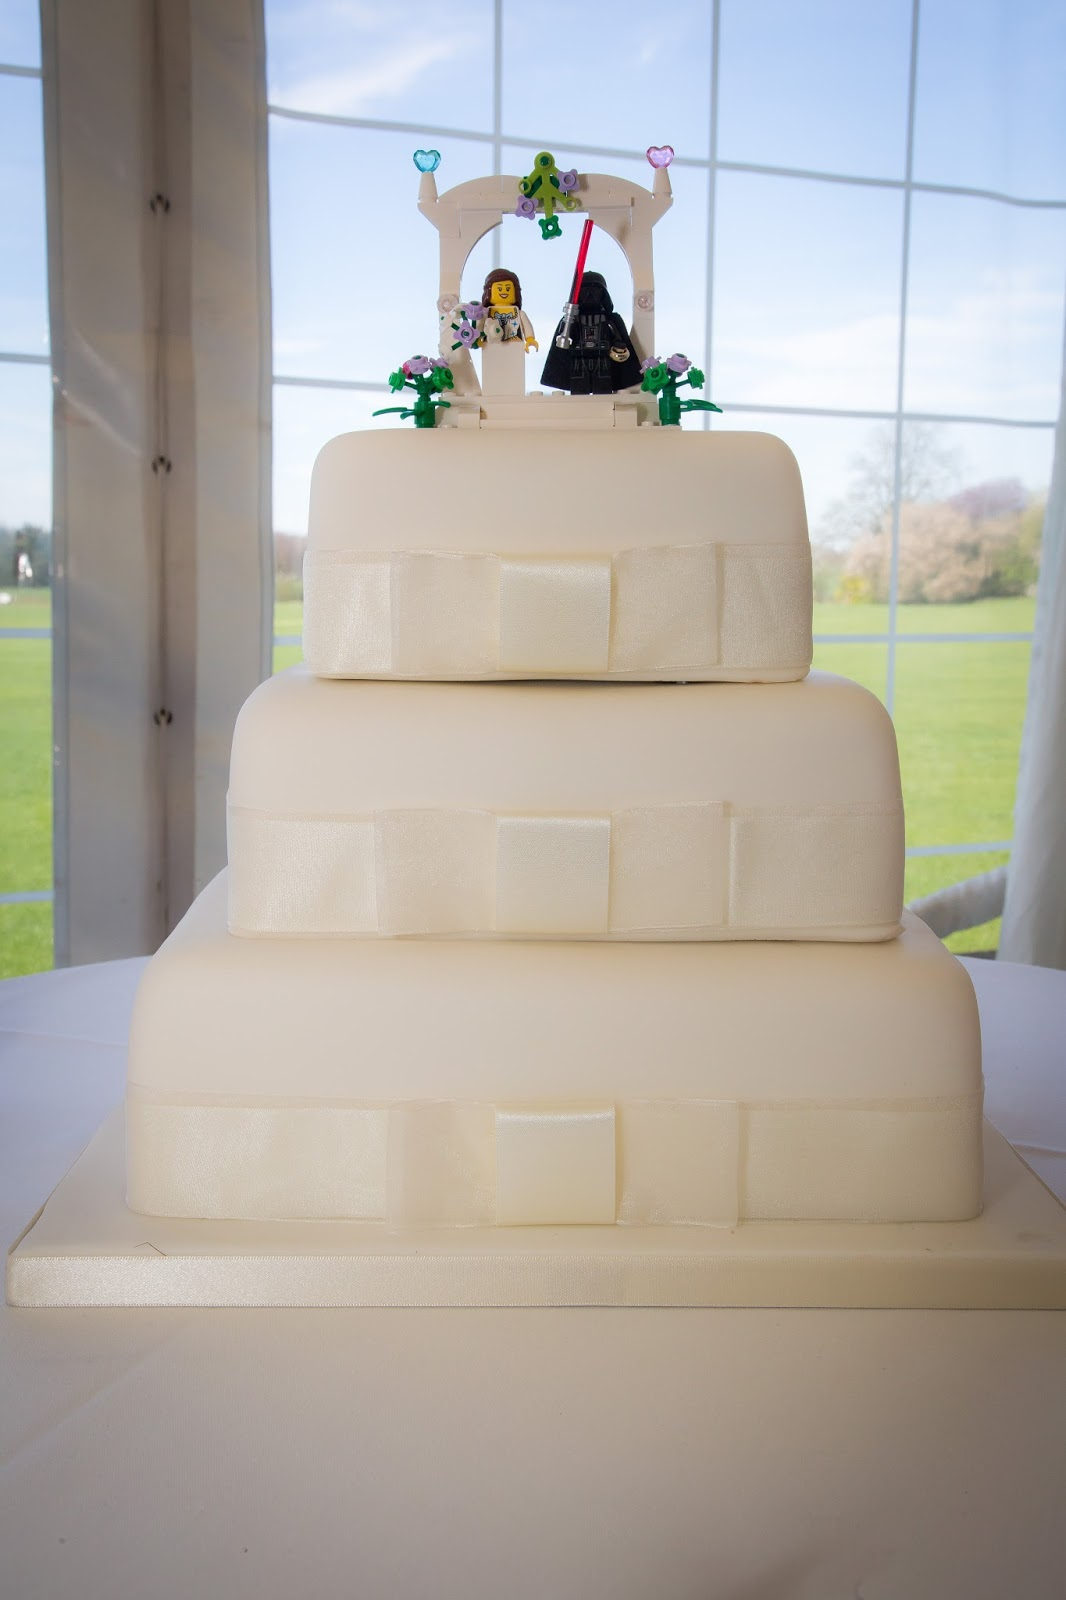 I Managed To Find A Lego Wedding Favour Set Which Was Perfect As Cake Topper It Only About 6 He Replaced The Groom With Darth Vader And